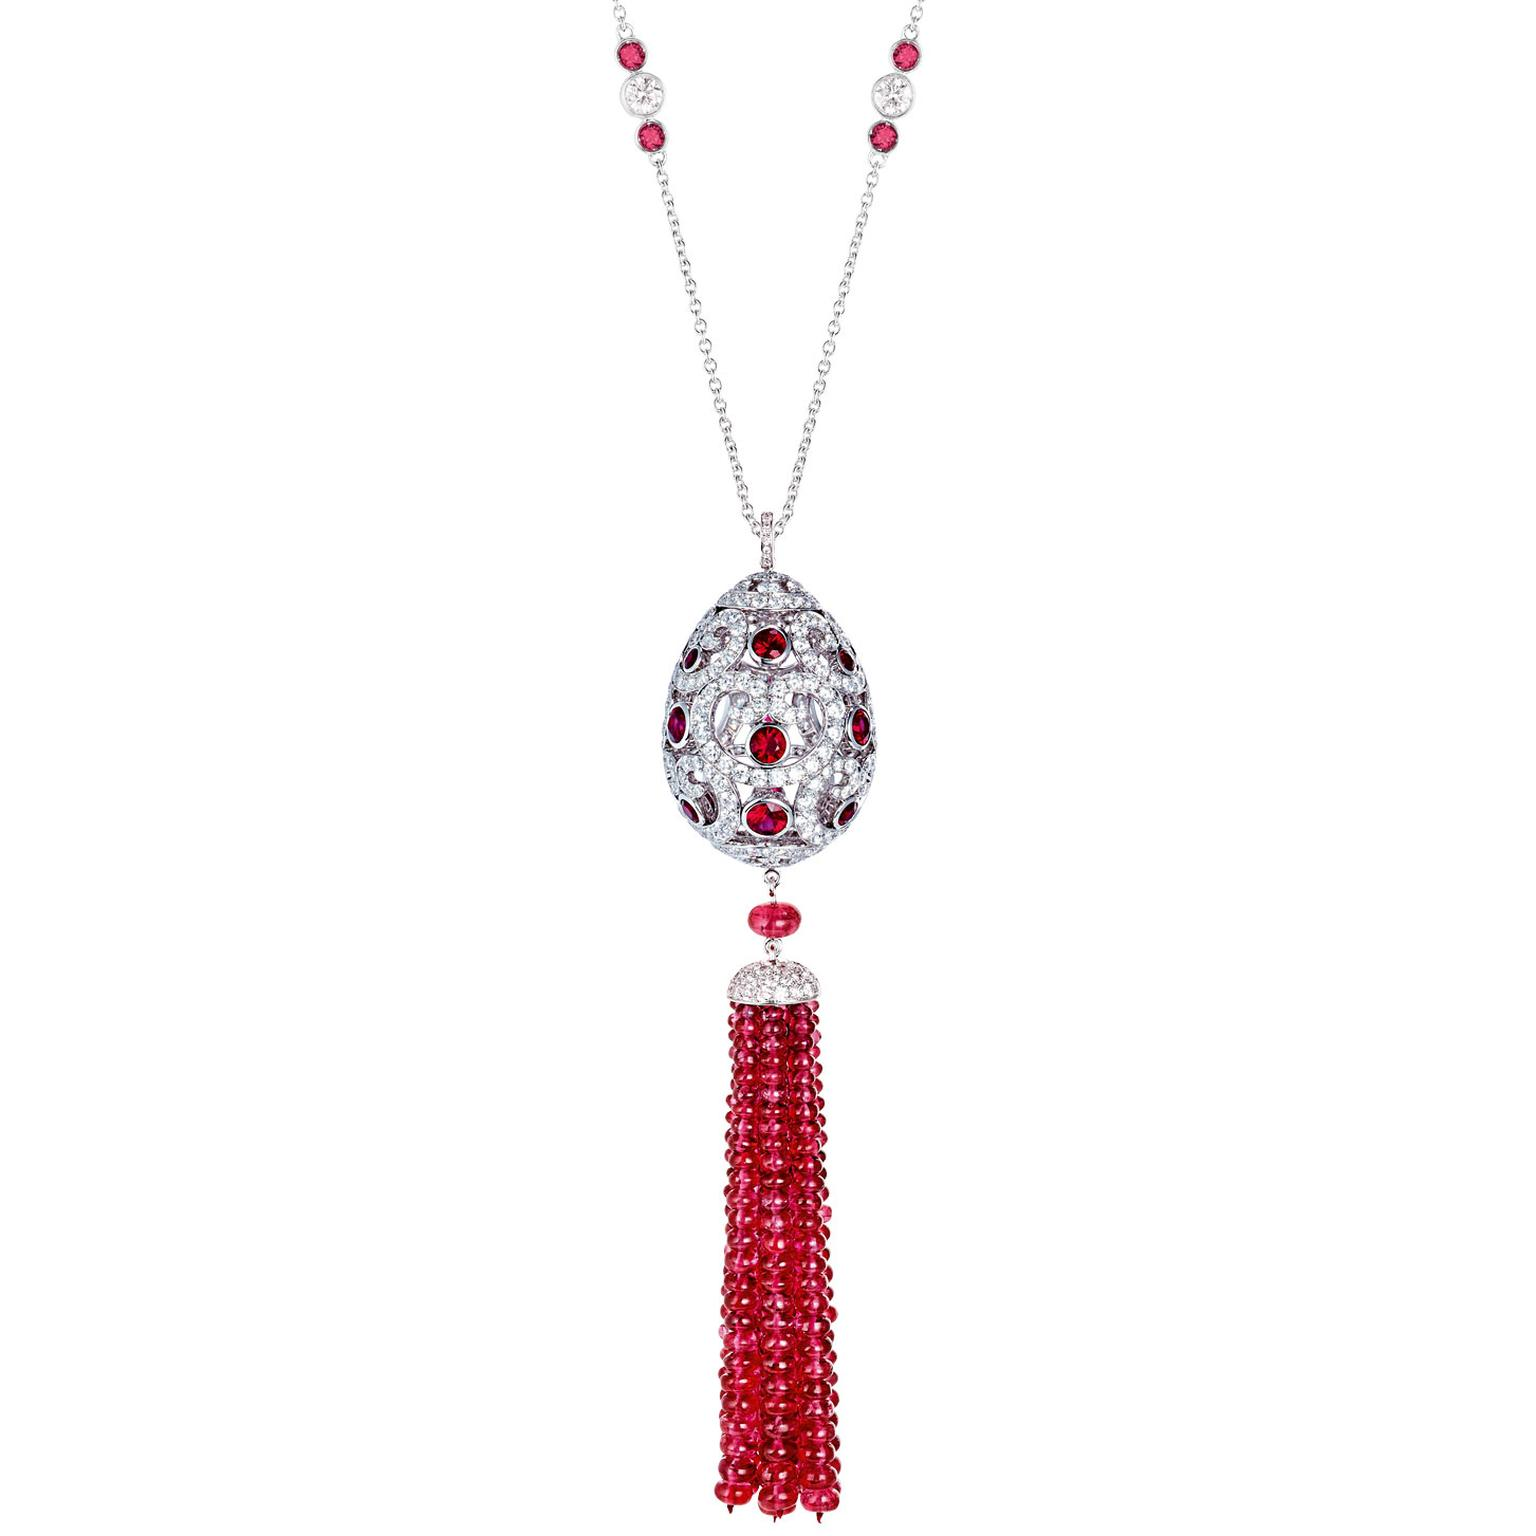 Imperatrice ruby tassel pendant necklace faberg the jewellery faberg imperatrice ruby tassel pendant necklace aloadofball Gallery